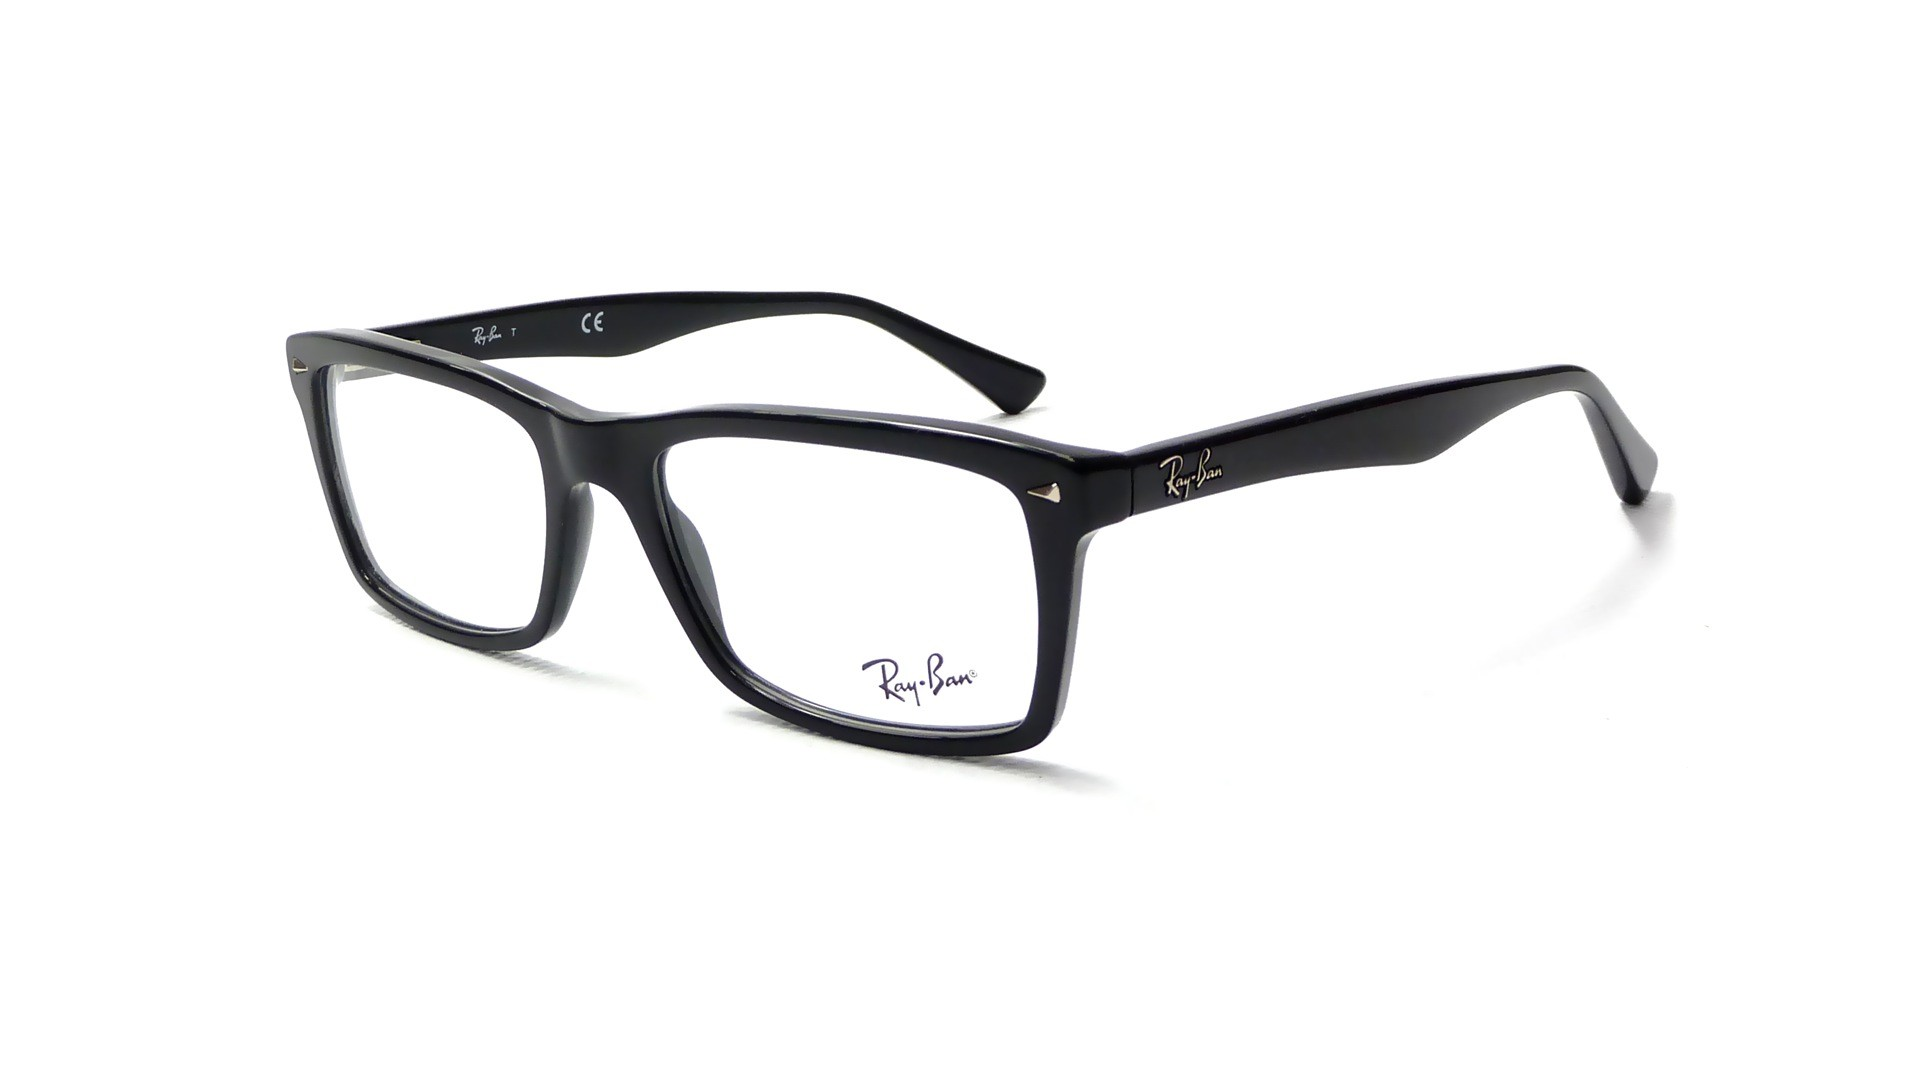 1b0a41d4754 Eyeglasses Ray-Ban RX5287 RB5287 2000 54-18 Black Medium